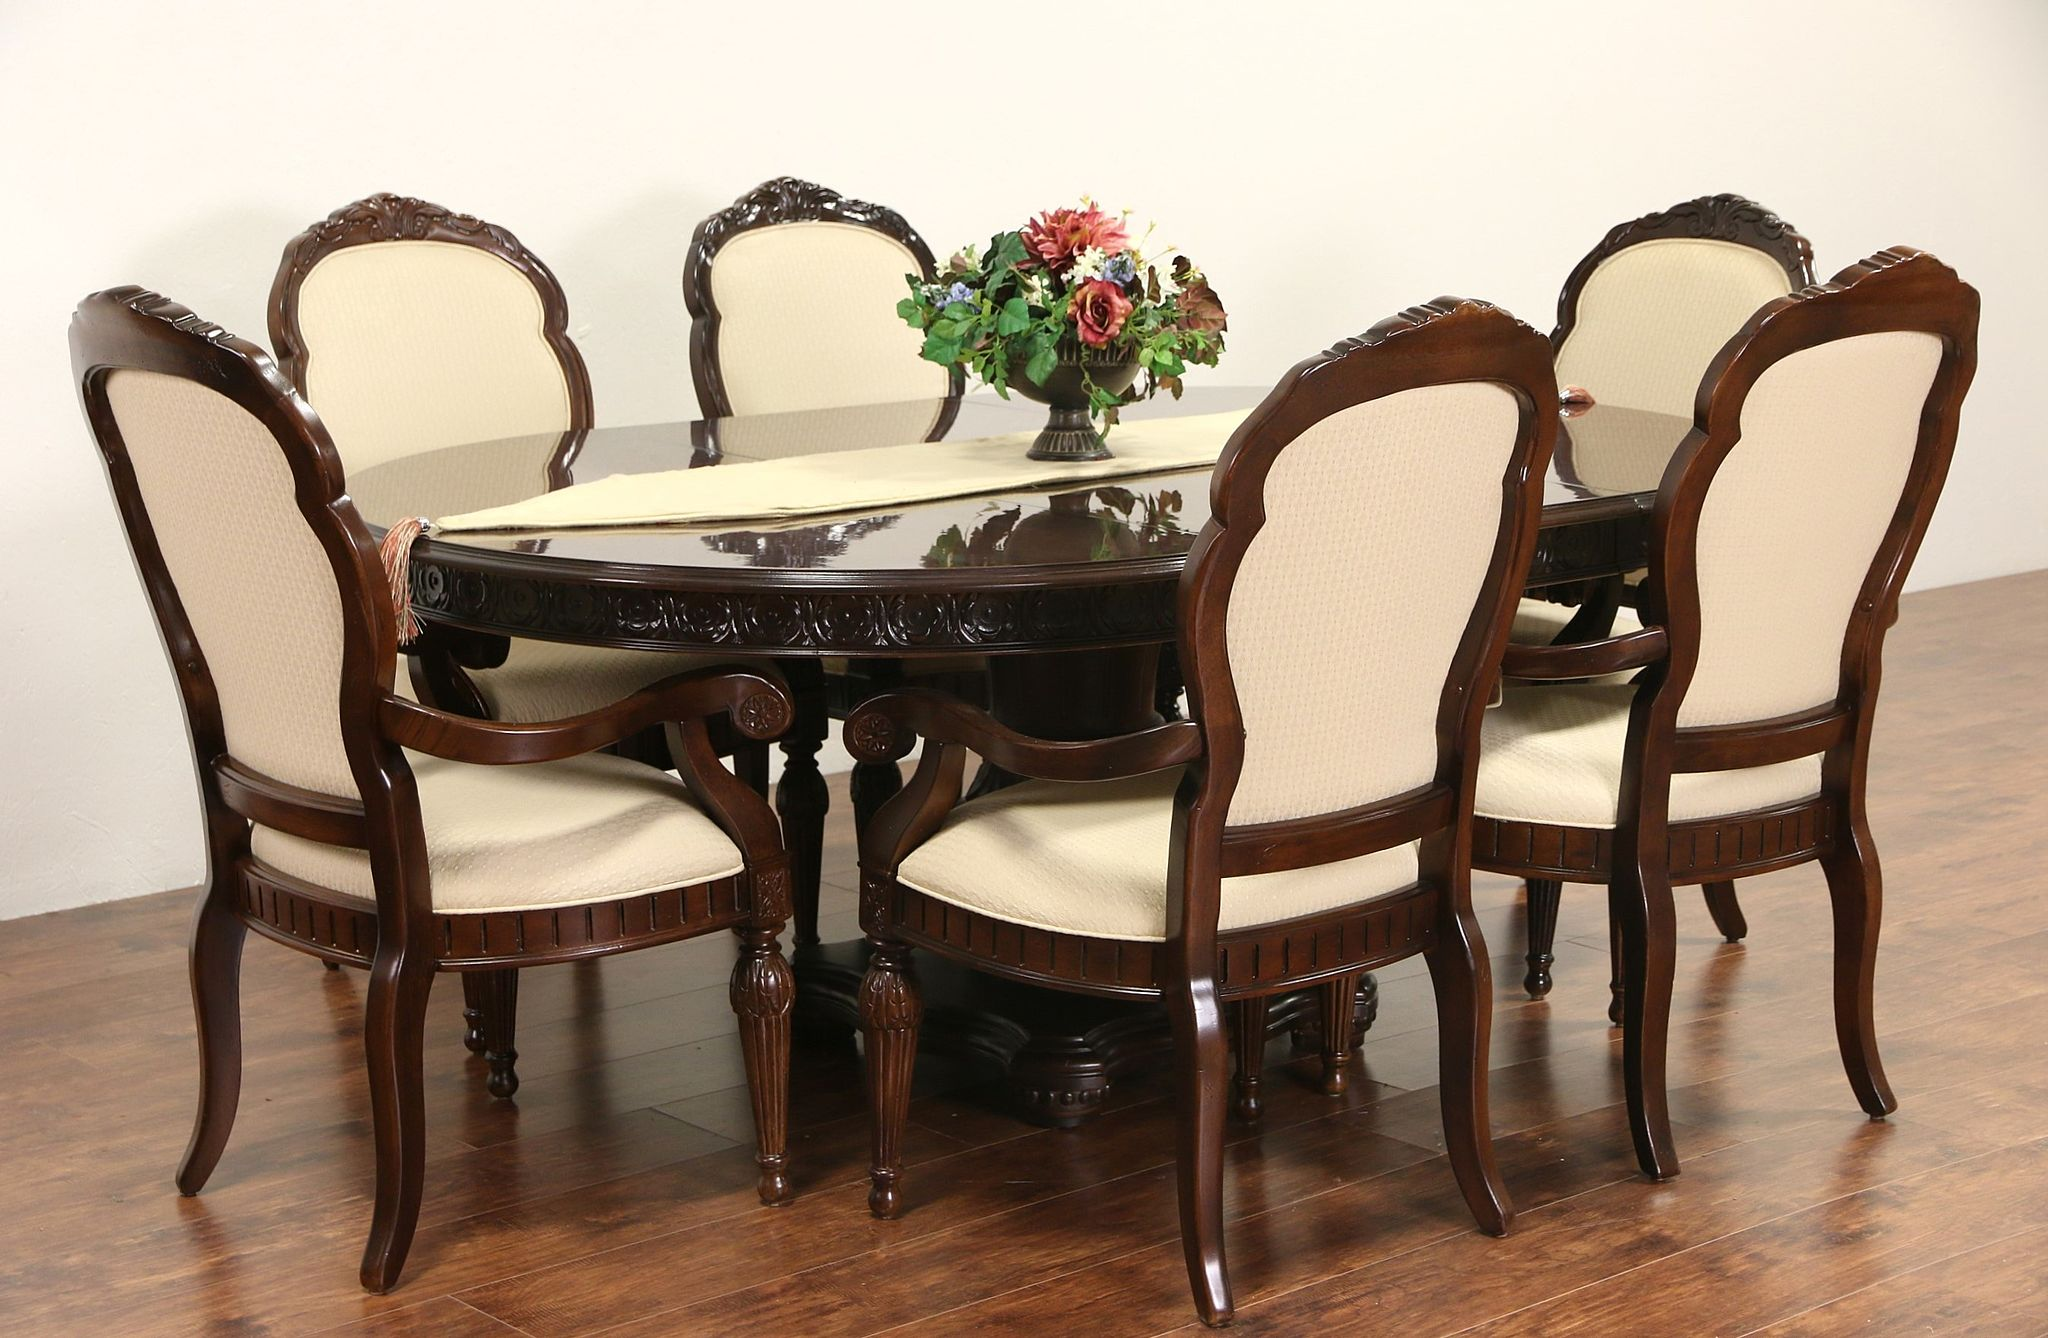 Sold bernhardt signed round cherry dining set table for Round dining table set with leaf